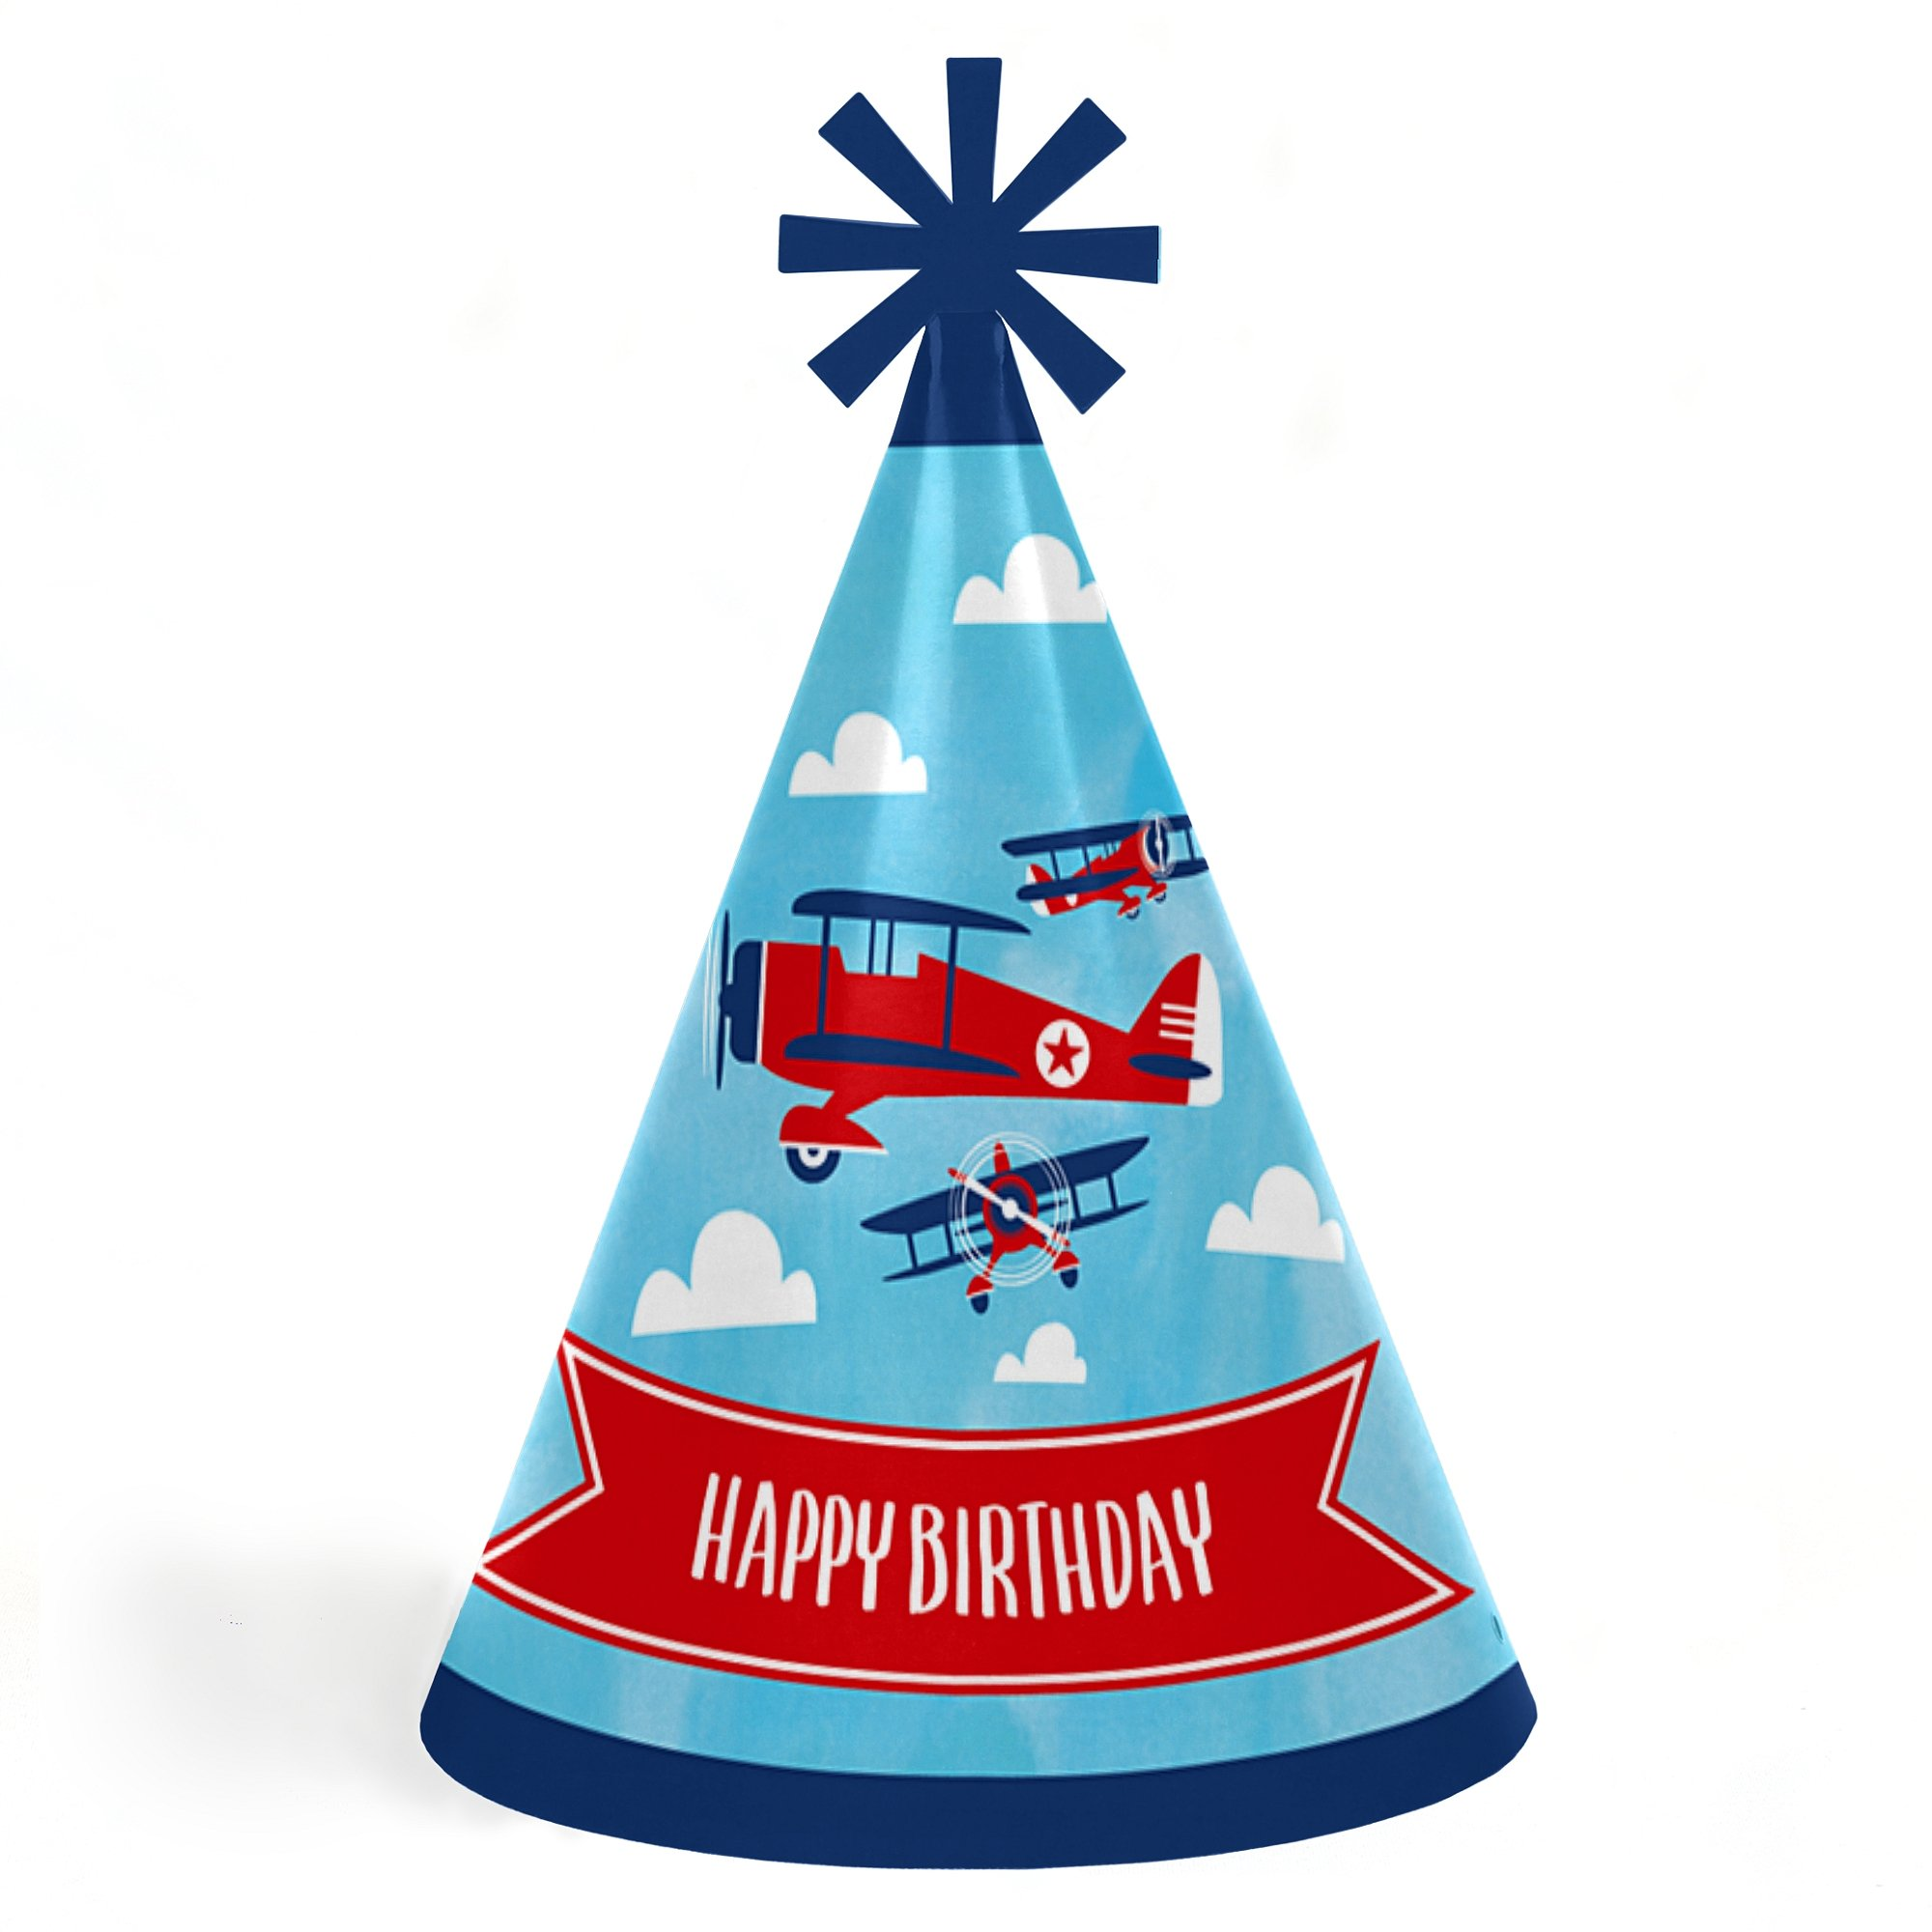 Taking Flight - Airplane - Cone Happy Birthday Party Hats for Kids and Adults - Set of 8 (Standard Size)